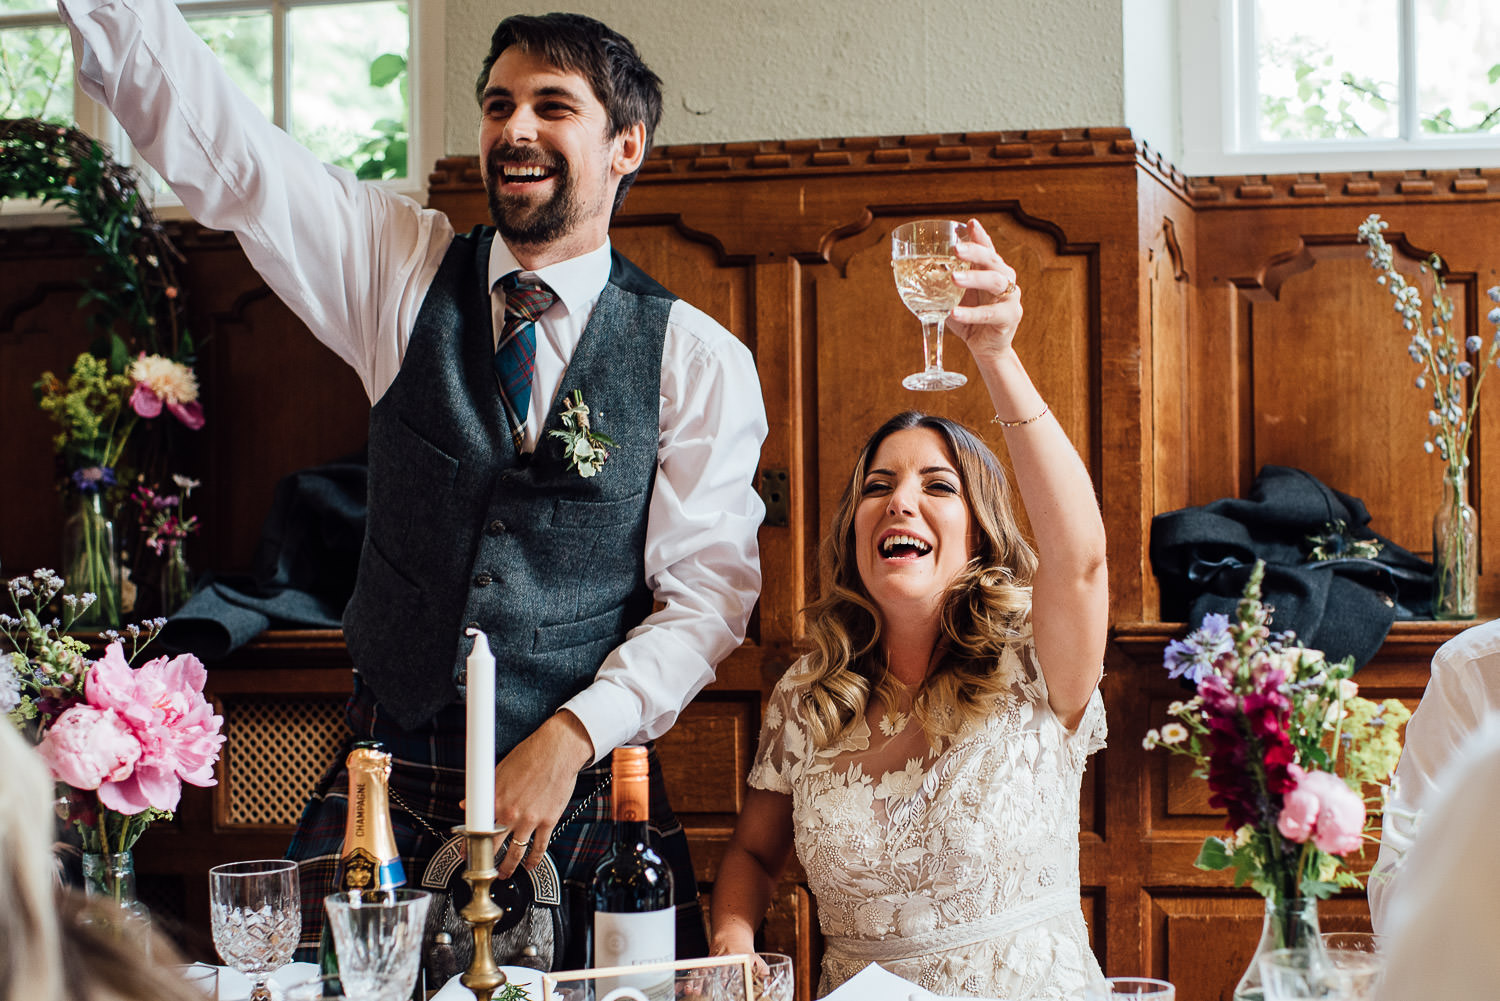 Bridal toast in Barley Wood House Bristol Wedding by bristol wedding photographer the shannons photography